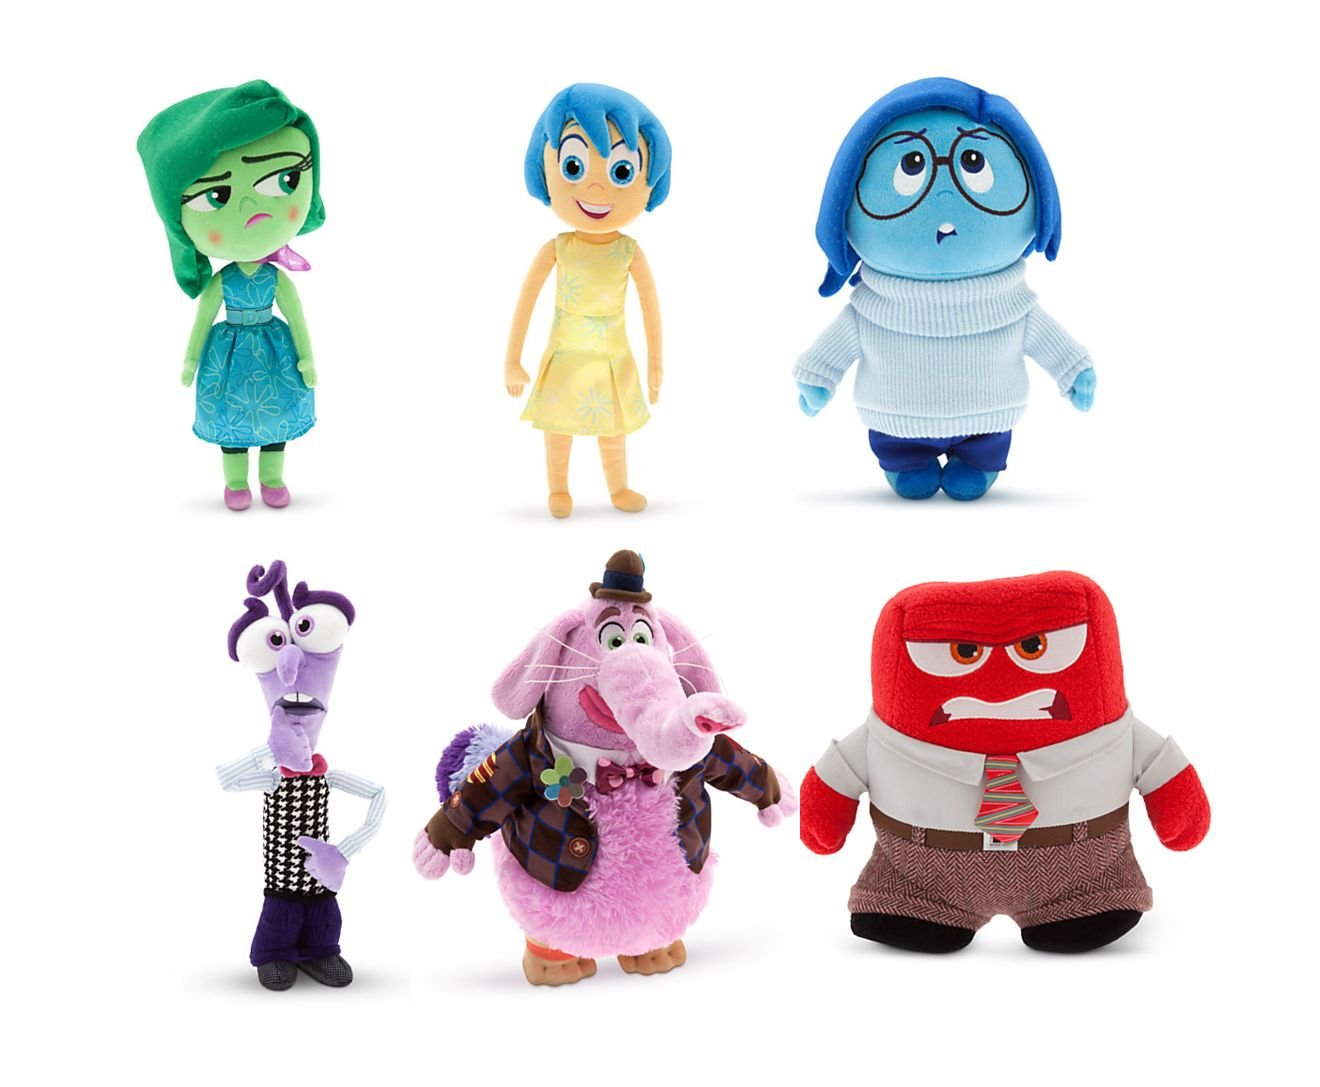 Disney/Pixar's Inside Out 6 Plush Set - Bing Bong, Joy, Anger, Fear, Sadness & Disgust - 11 inches